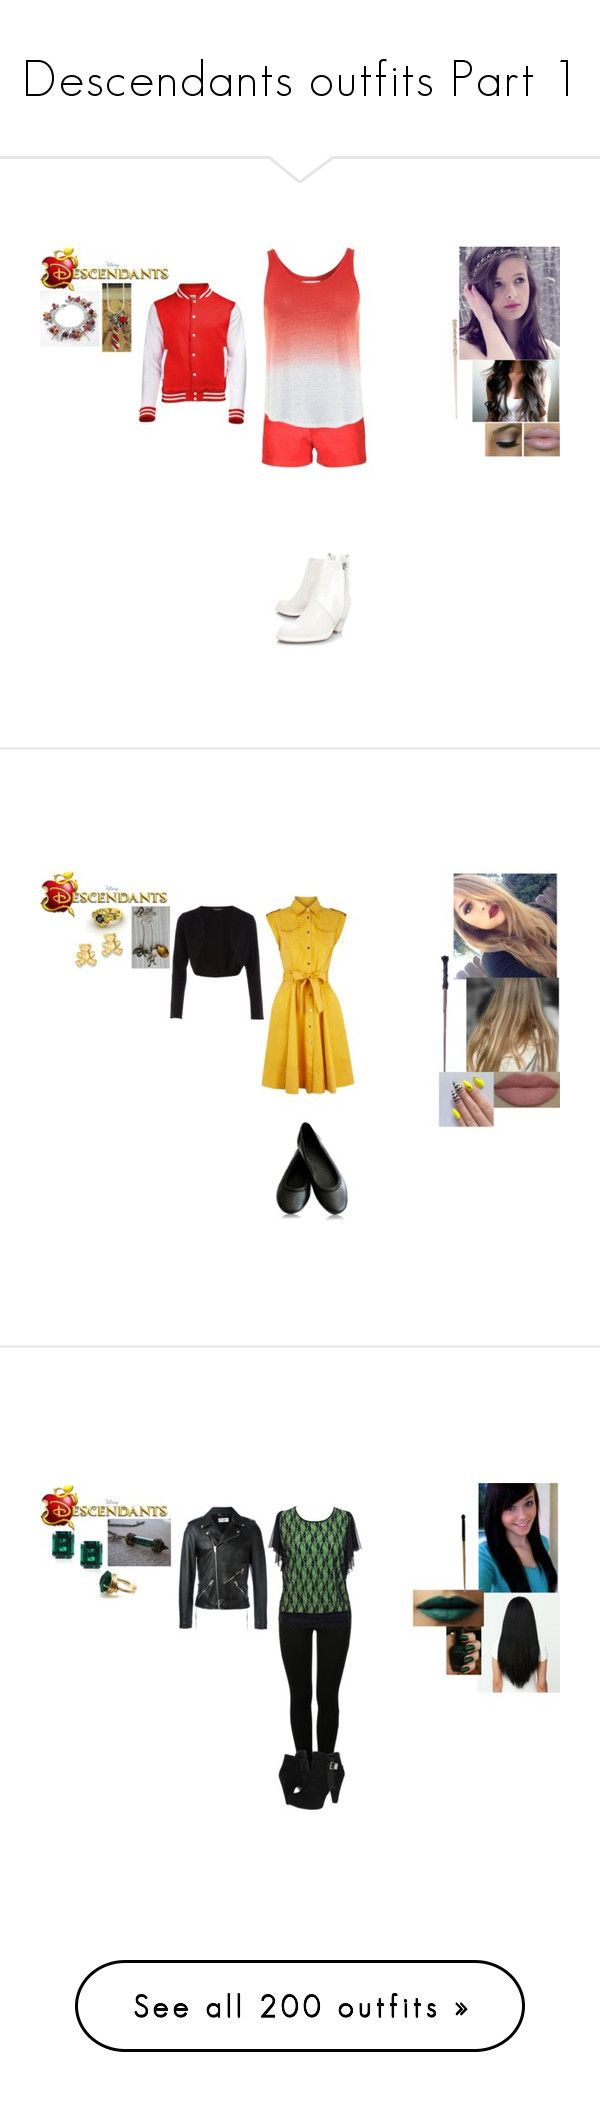 """""""Descendants outfits Part 1"""" by maxinehearts ❤ liked on Polyvore featuring Maxinesdescendants, Sonia Rykiel, Velvet by Graham & Spencer, Acne Studios, Kevin Jewelers, Dorothy Perkins, CARAT* London, MM6 Maison Margiela, Stuart Weitzman and Yves Saint Laurent"""